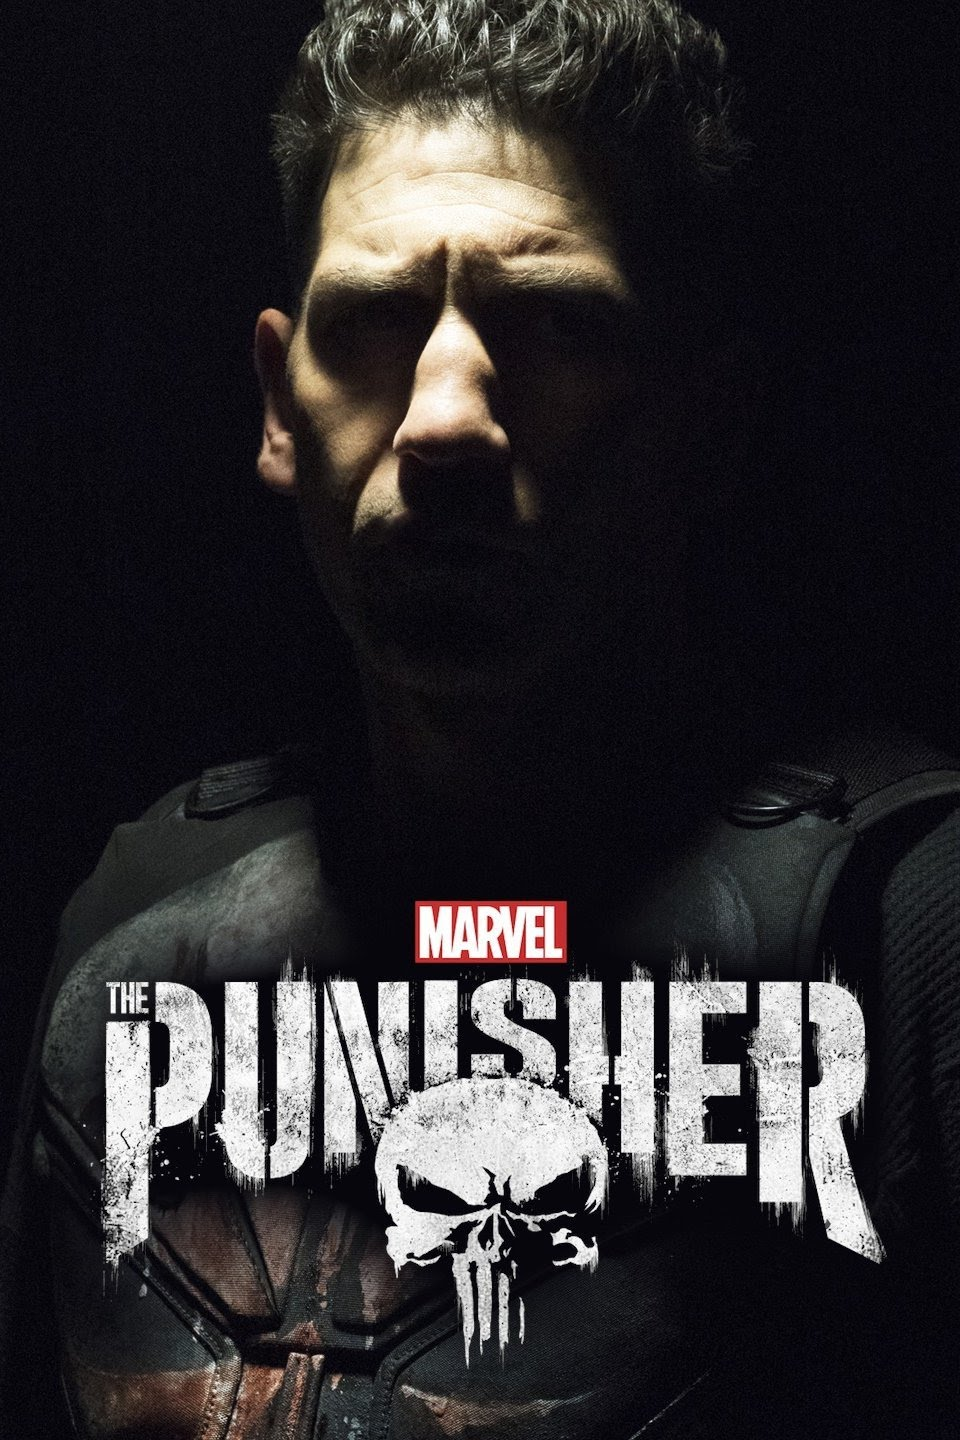 Marvel's The Punisher S01 E05 Cut